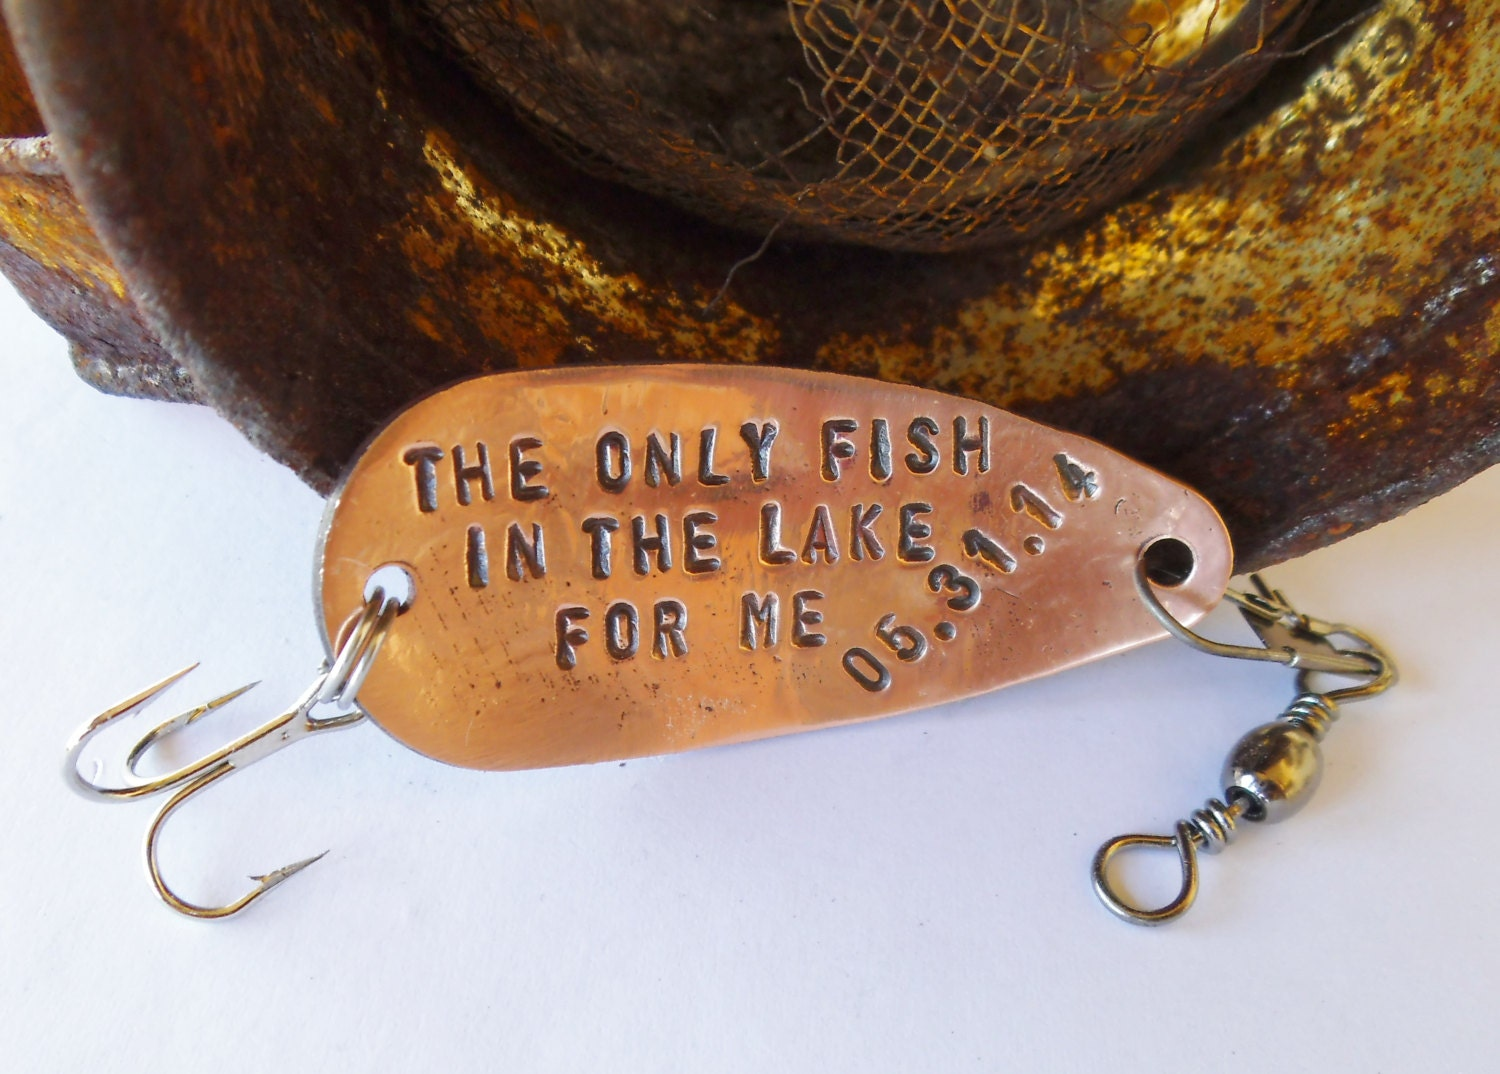 Lake fishing lure lakeside retreat mancave room decor for Fishing lure decor